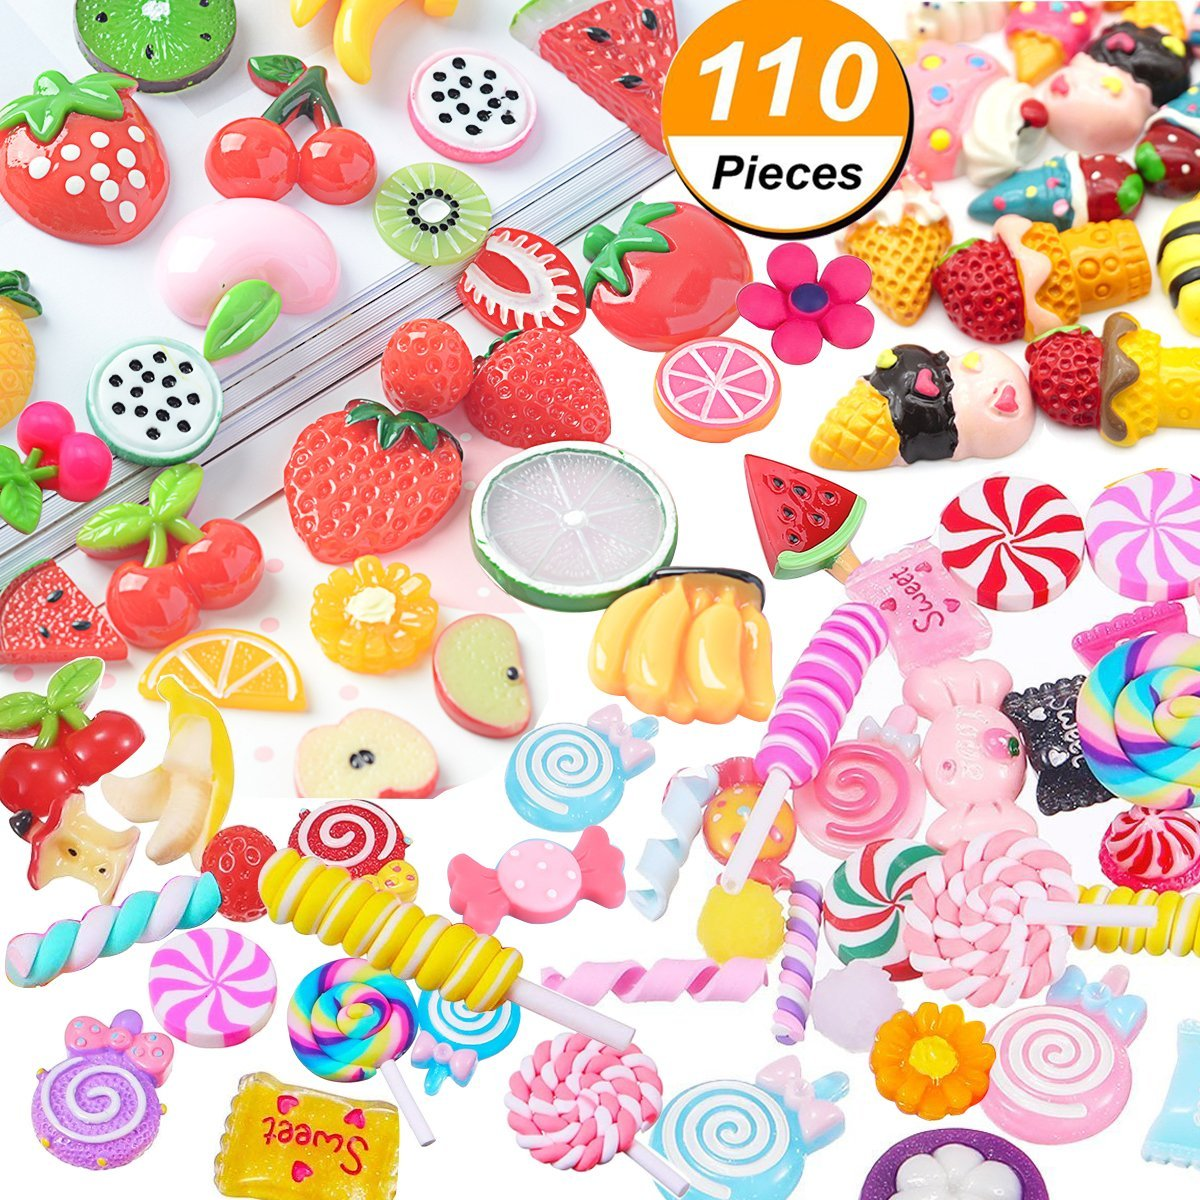 VVLife 110 Pieces Slime Charms Mixed Fruits and Sweets Slime Beads for DIY Crafts Accessories Scrapbooking, DIY Crafts Accessories